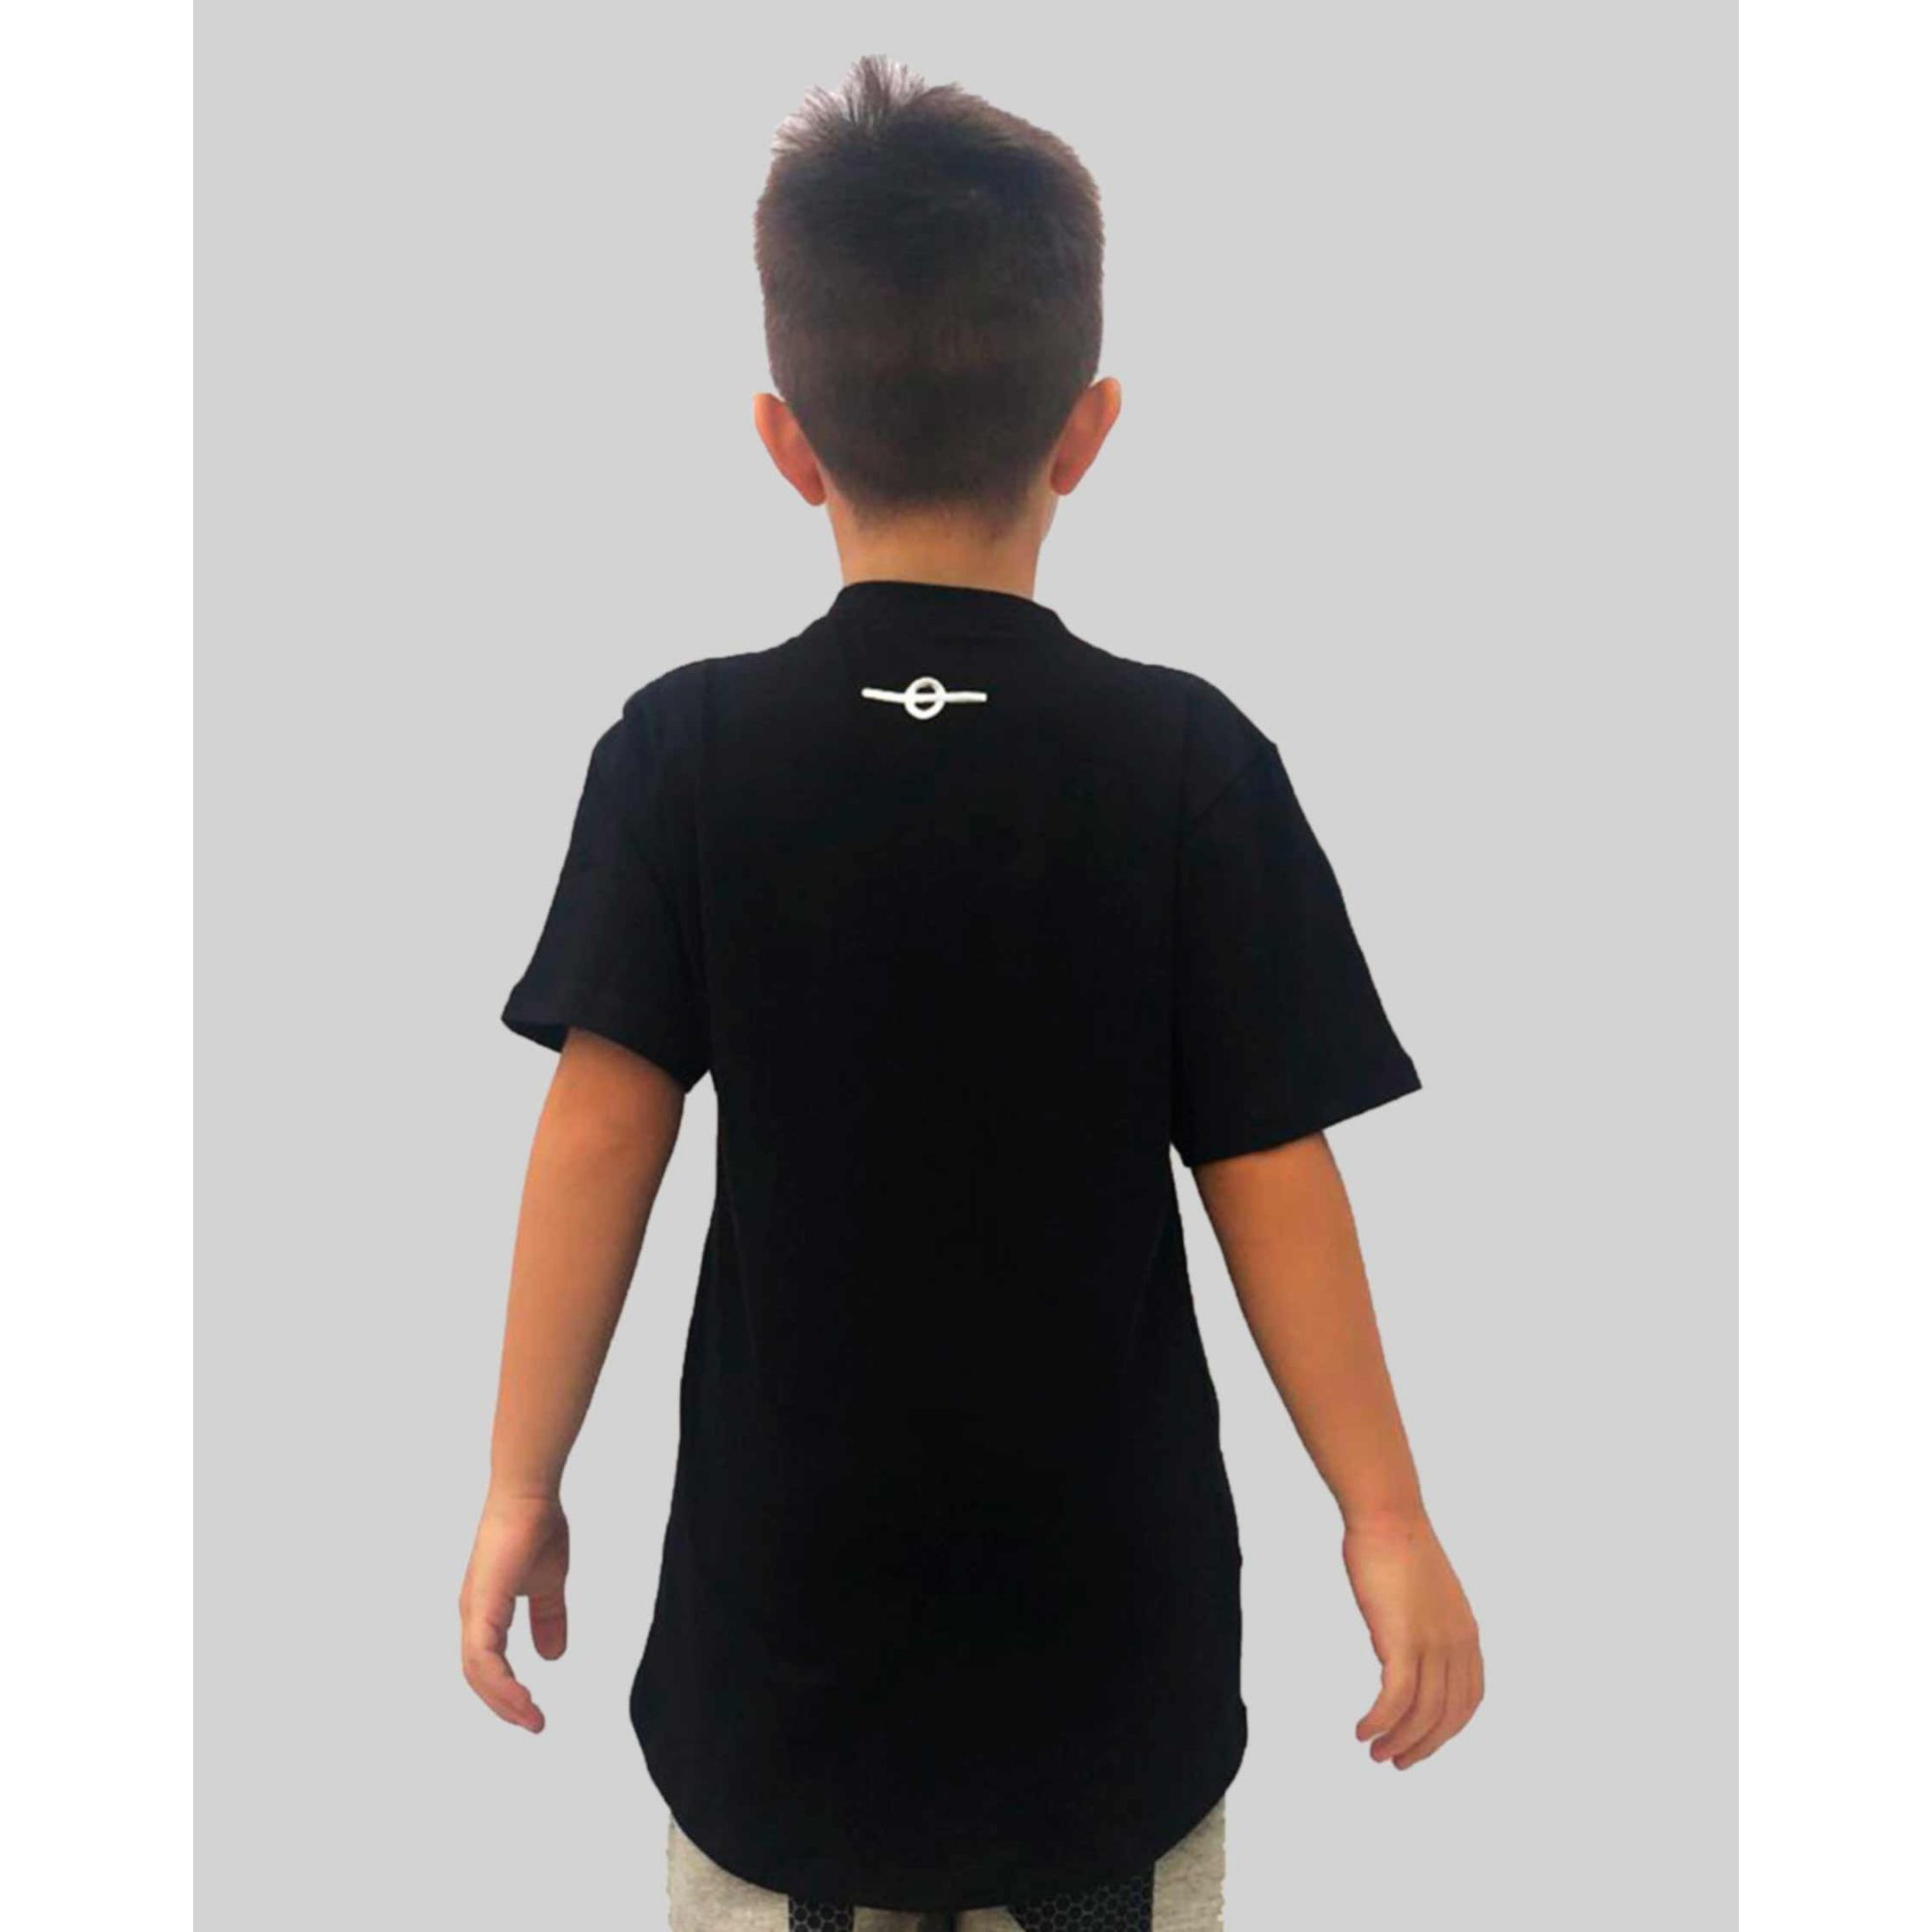 Camiseta Buh Kids MicroFoil Black